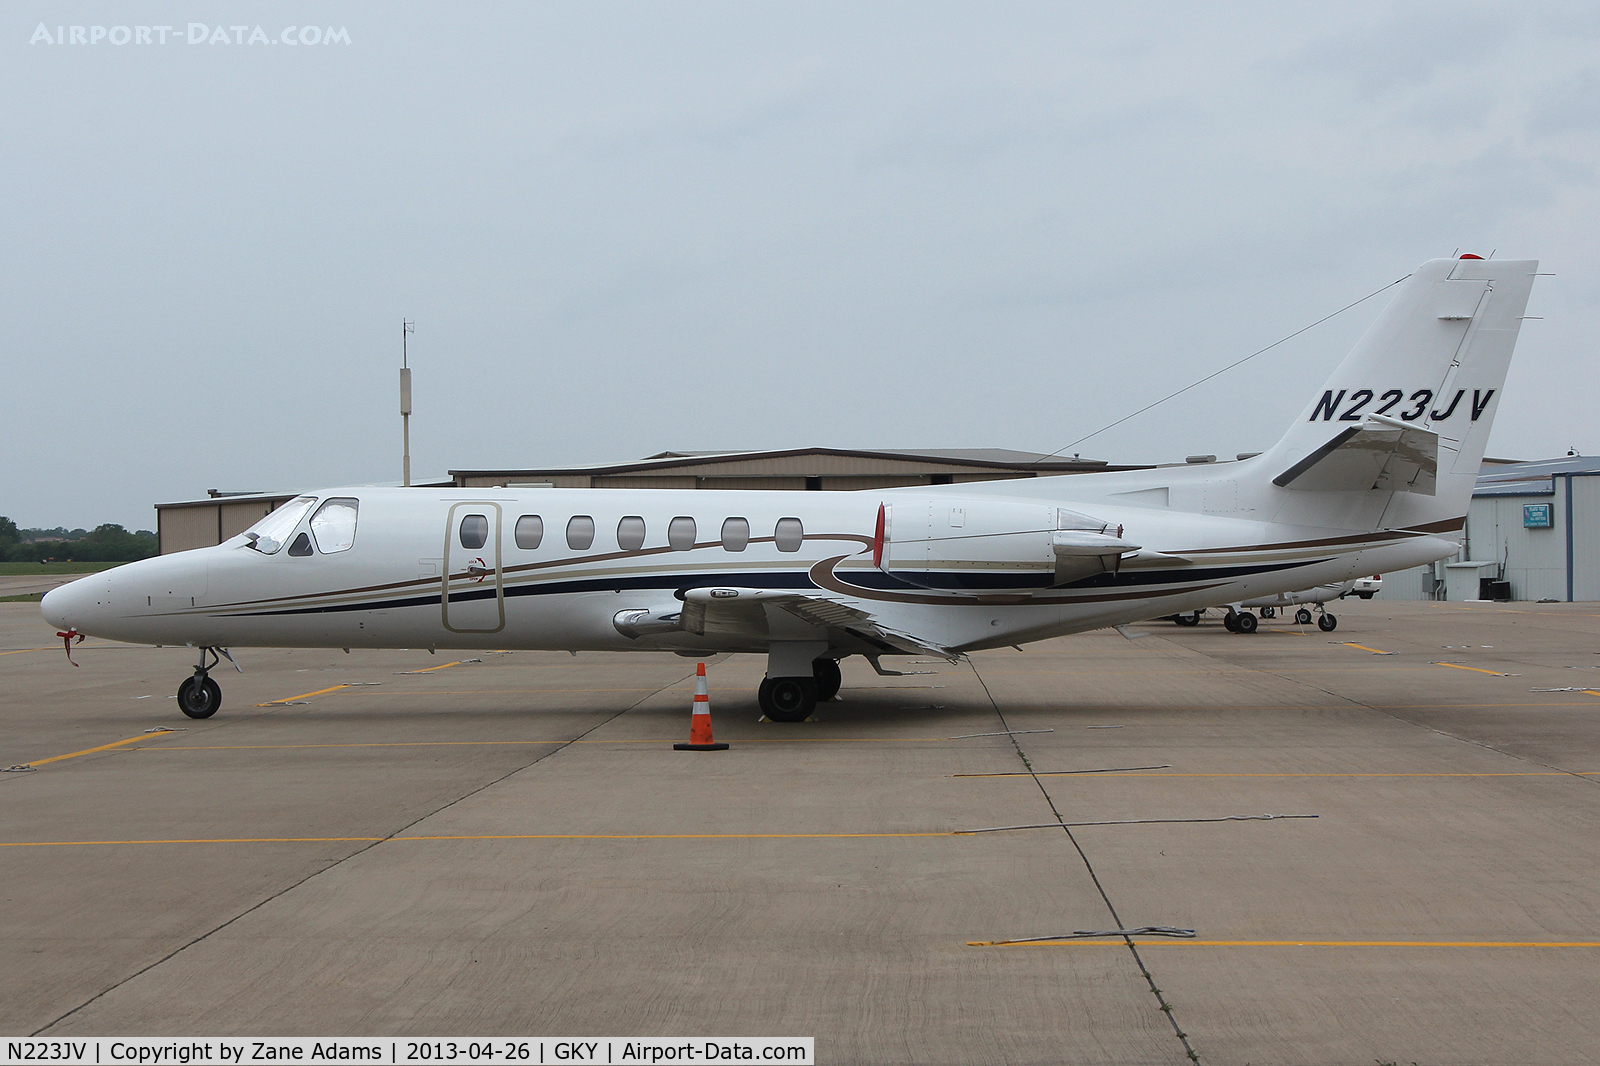 N223JV, 1991 Cessna 560 C/N 5600131, At Arlington Municipal Airport